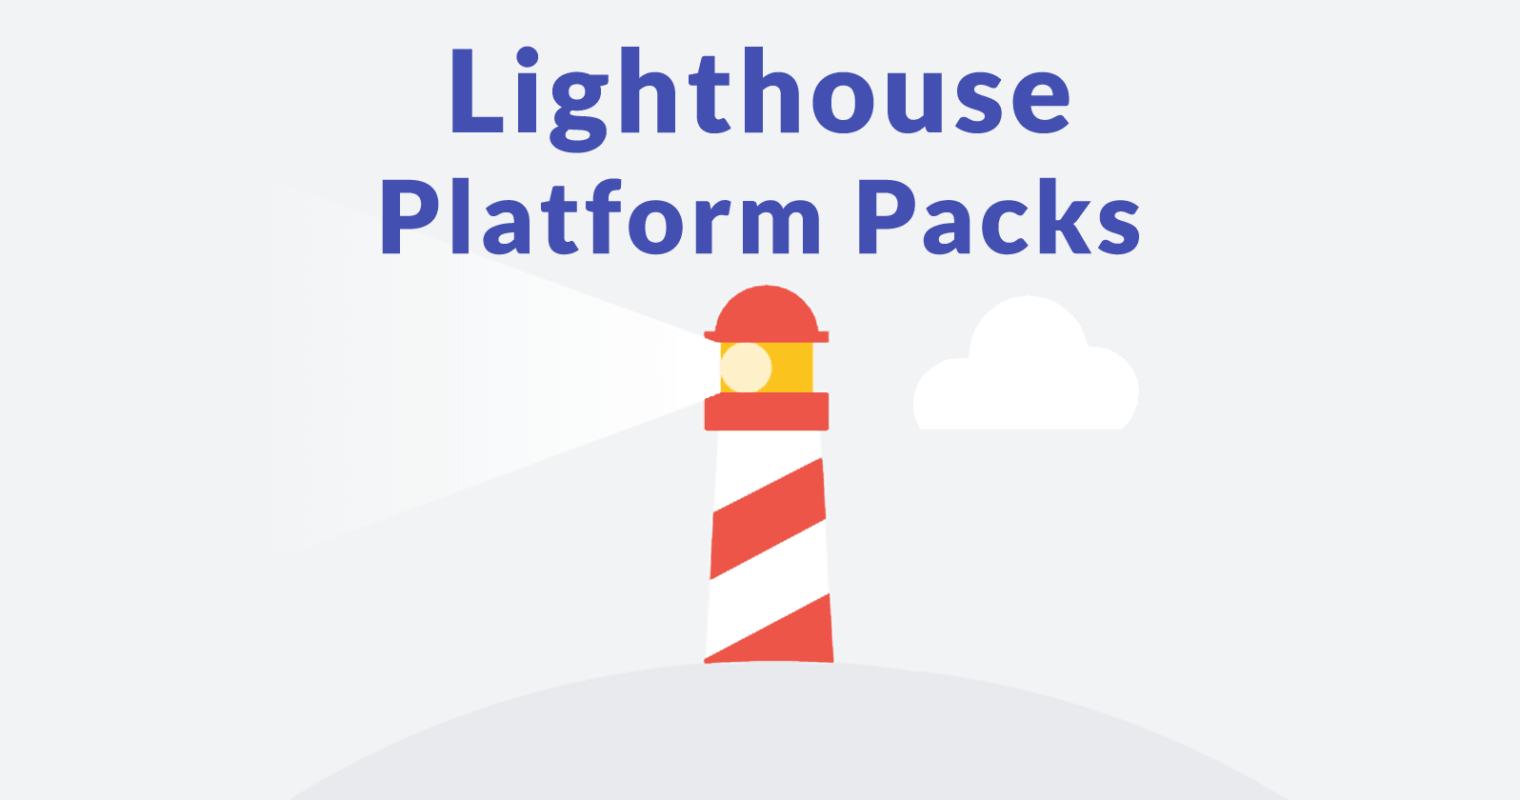 https://res.cloudinary.com/dpyy9uysx/image/upload/v1549371829/seo/lighthouse-platform-packs-SEO%20warriors.png